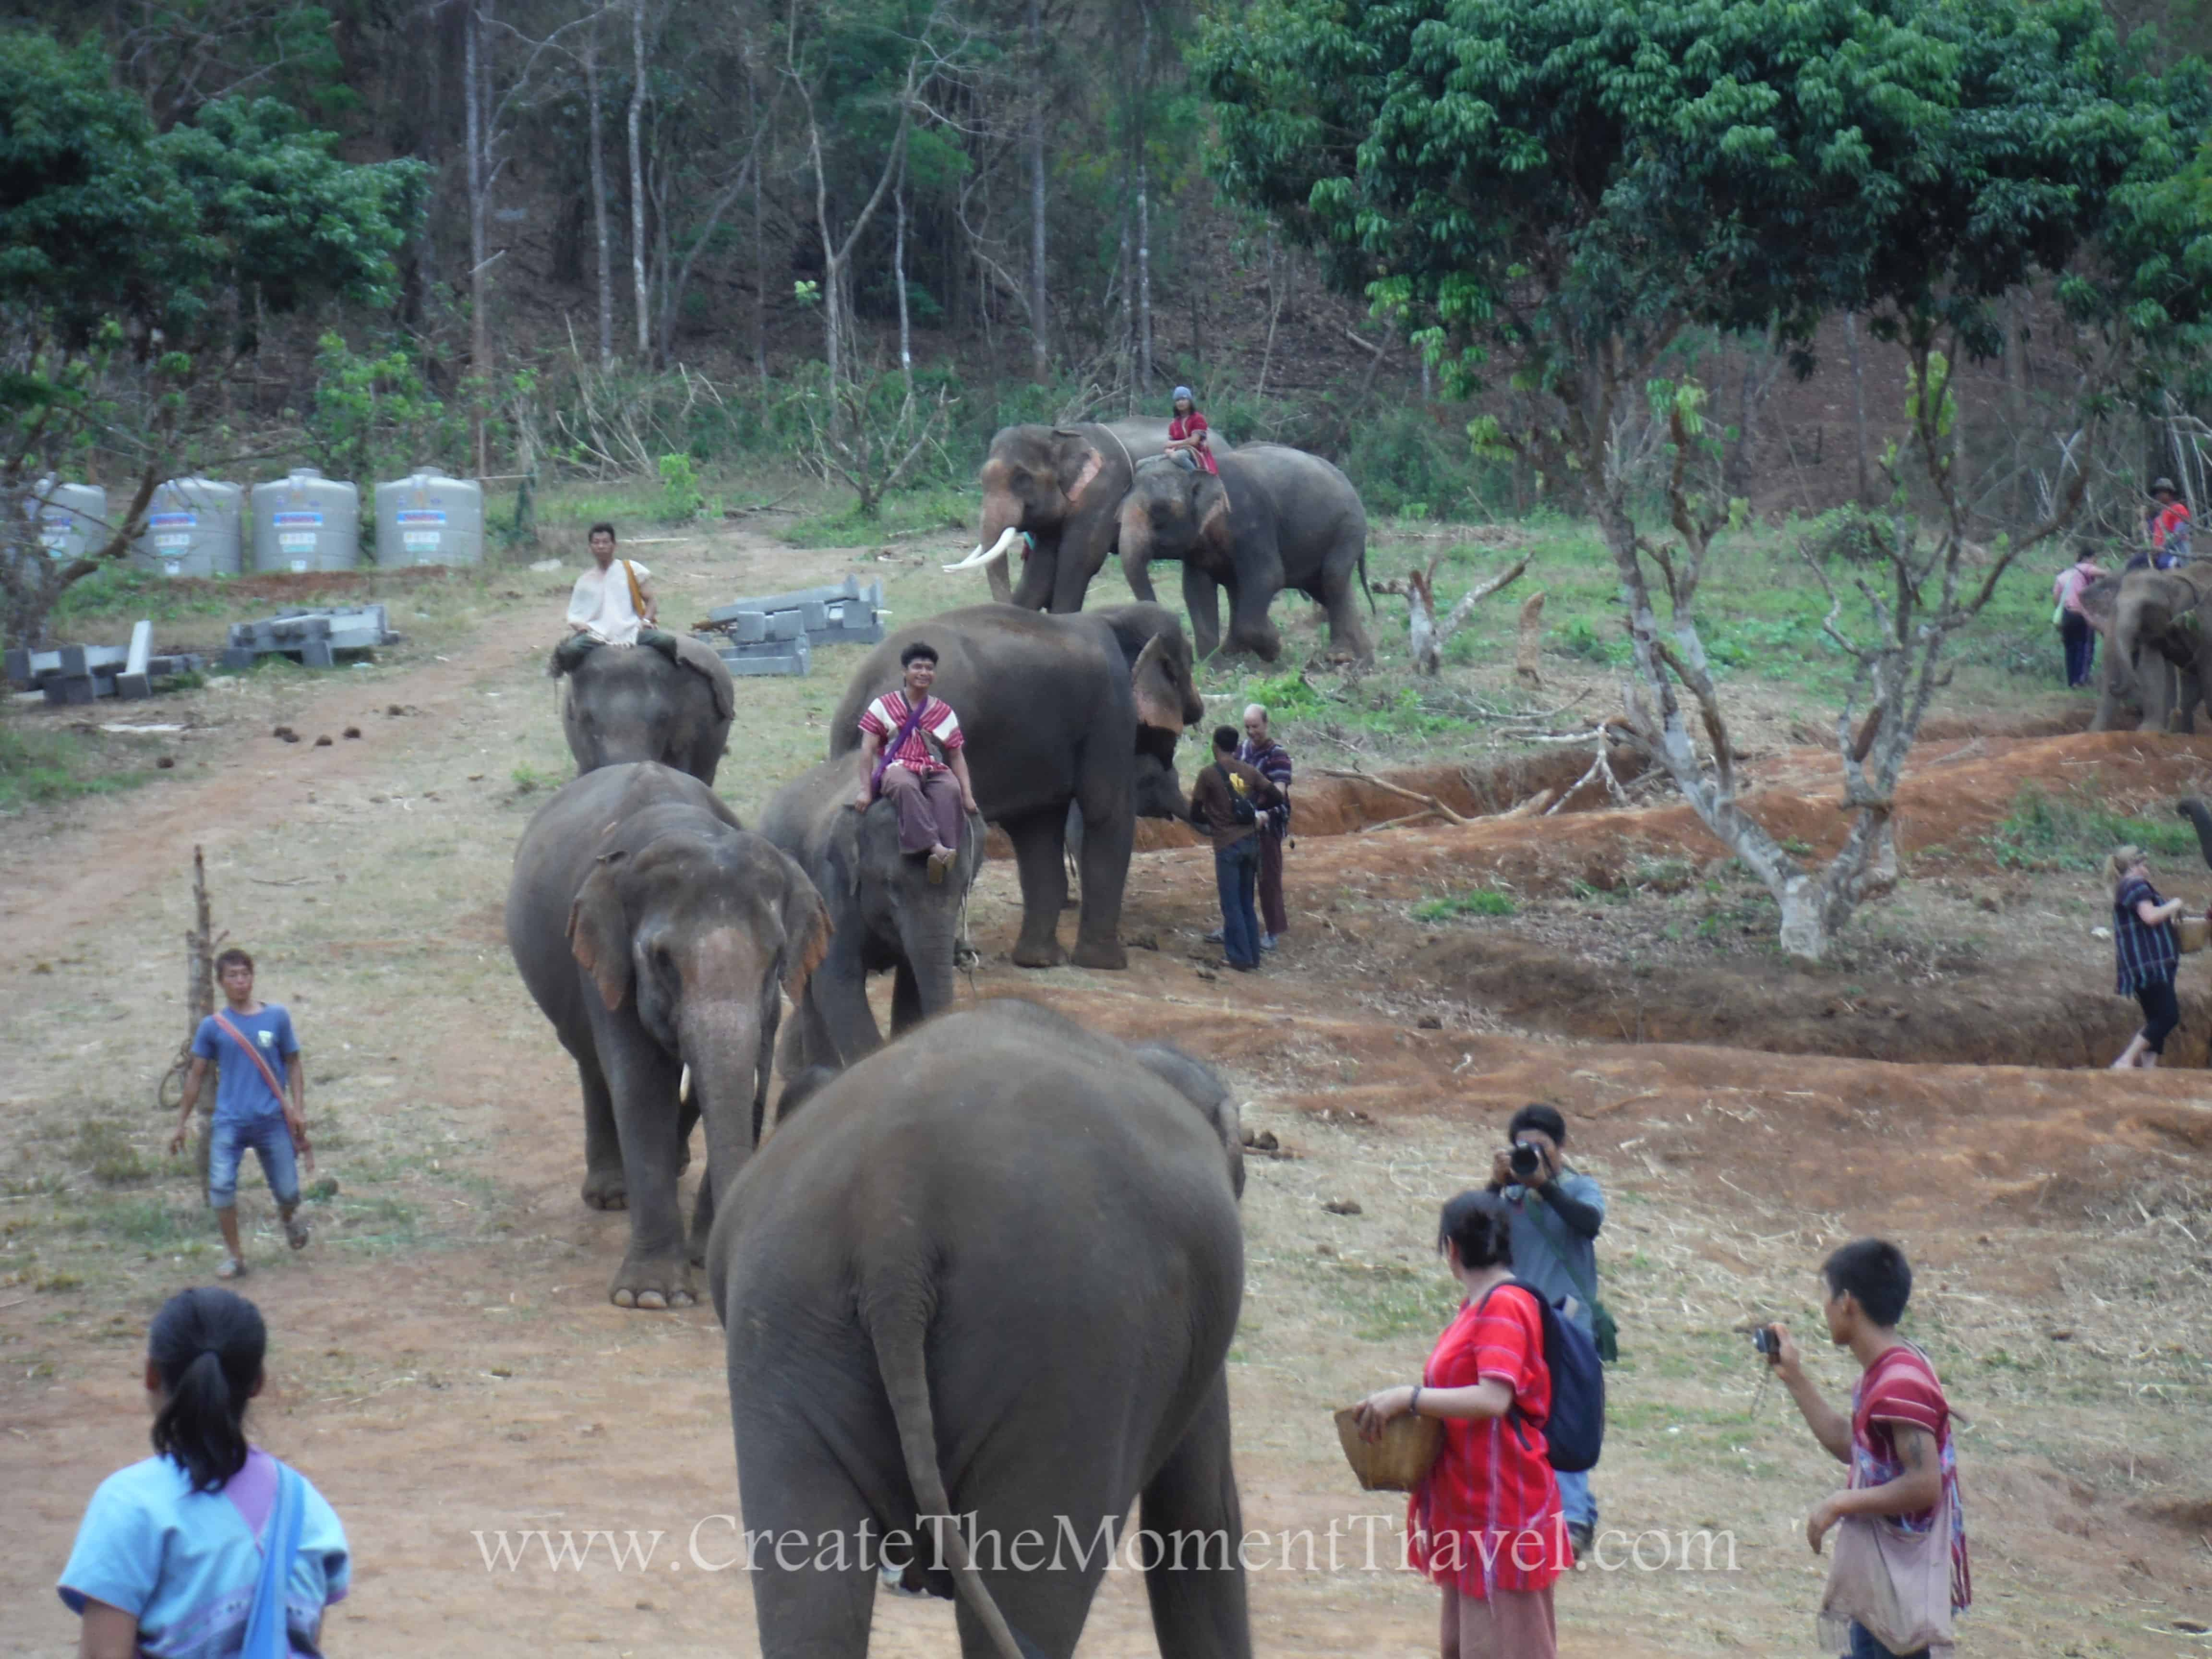 Elephants coming for daily care at Elephant Sanctuary Chiang Mai Thailand by Create The Moment Travel